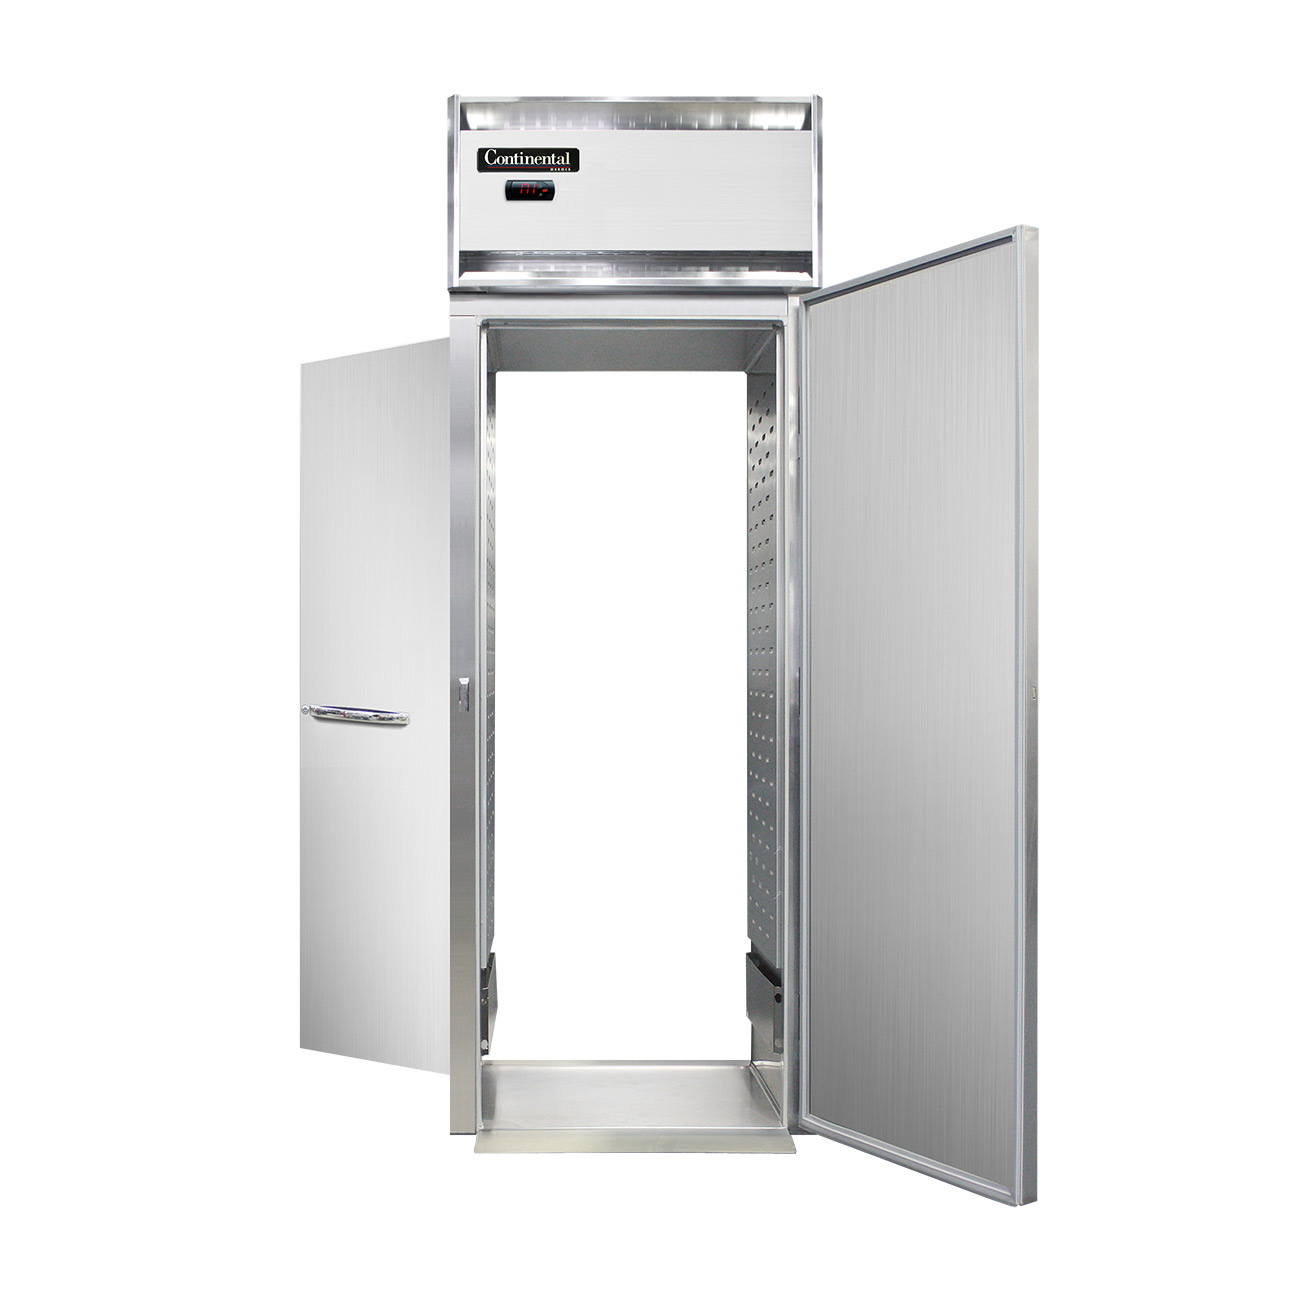 Continental Refrigerator DL1WI-SA-RT-E heated cabinet, roll-thru